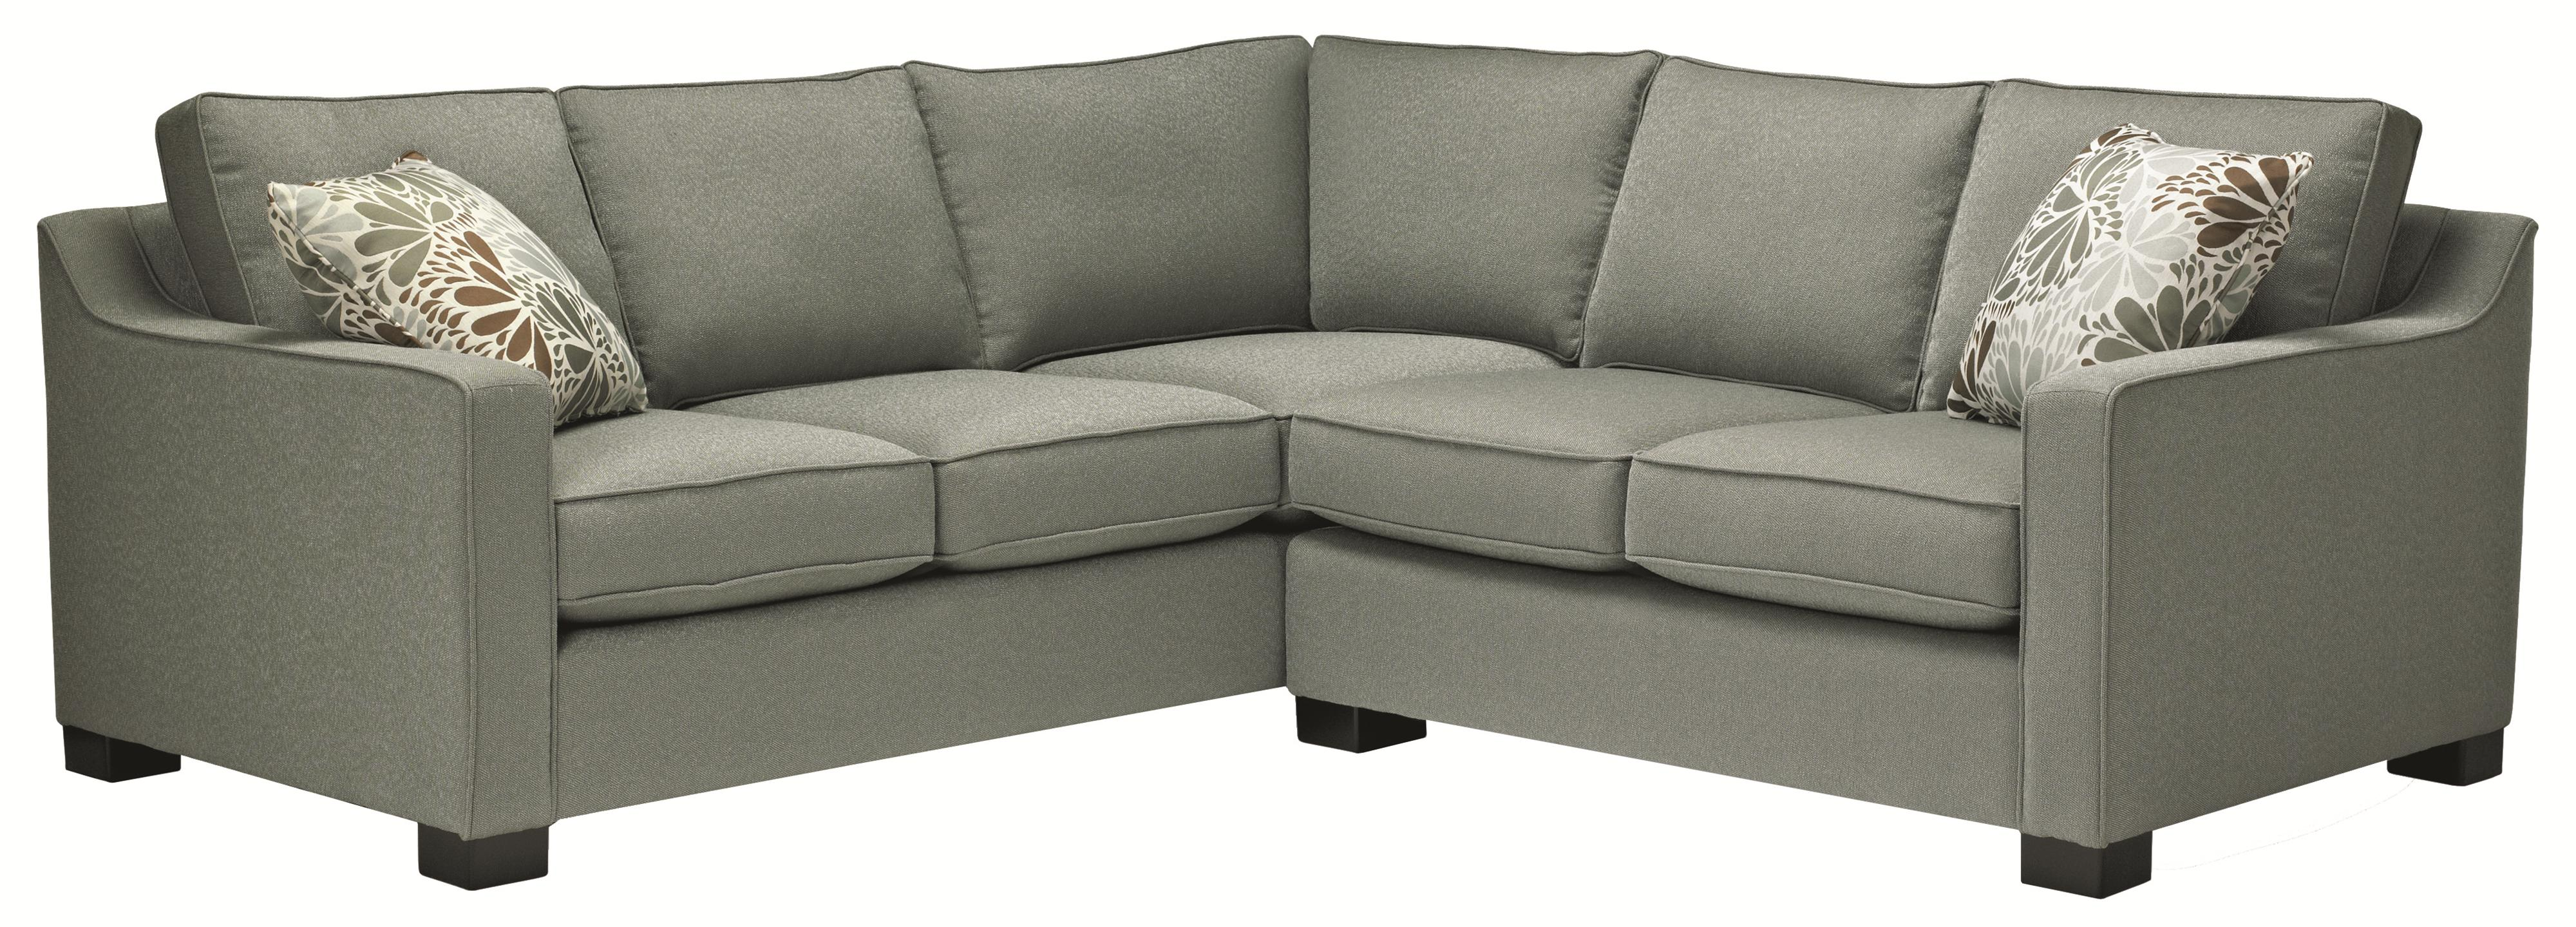 2424 Sectional Sofa by Lewis Home at Stoney Creek Furniture